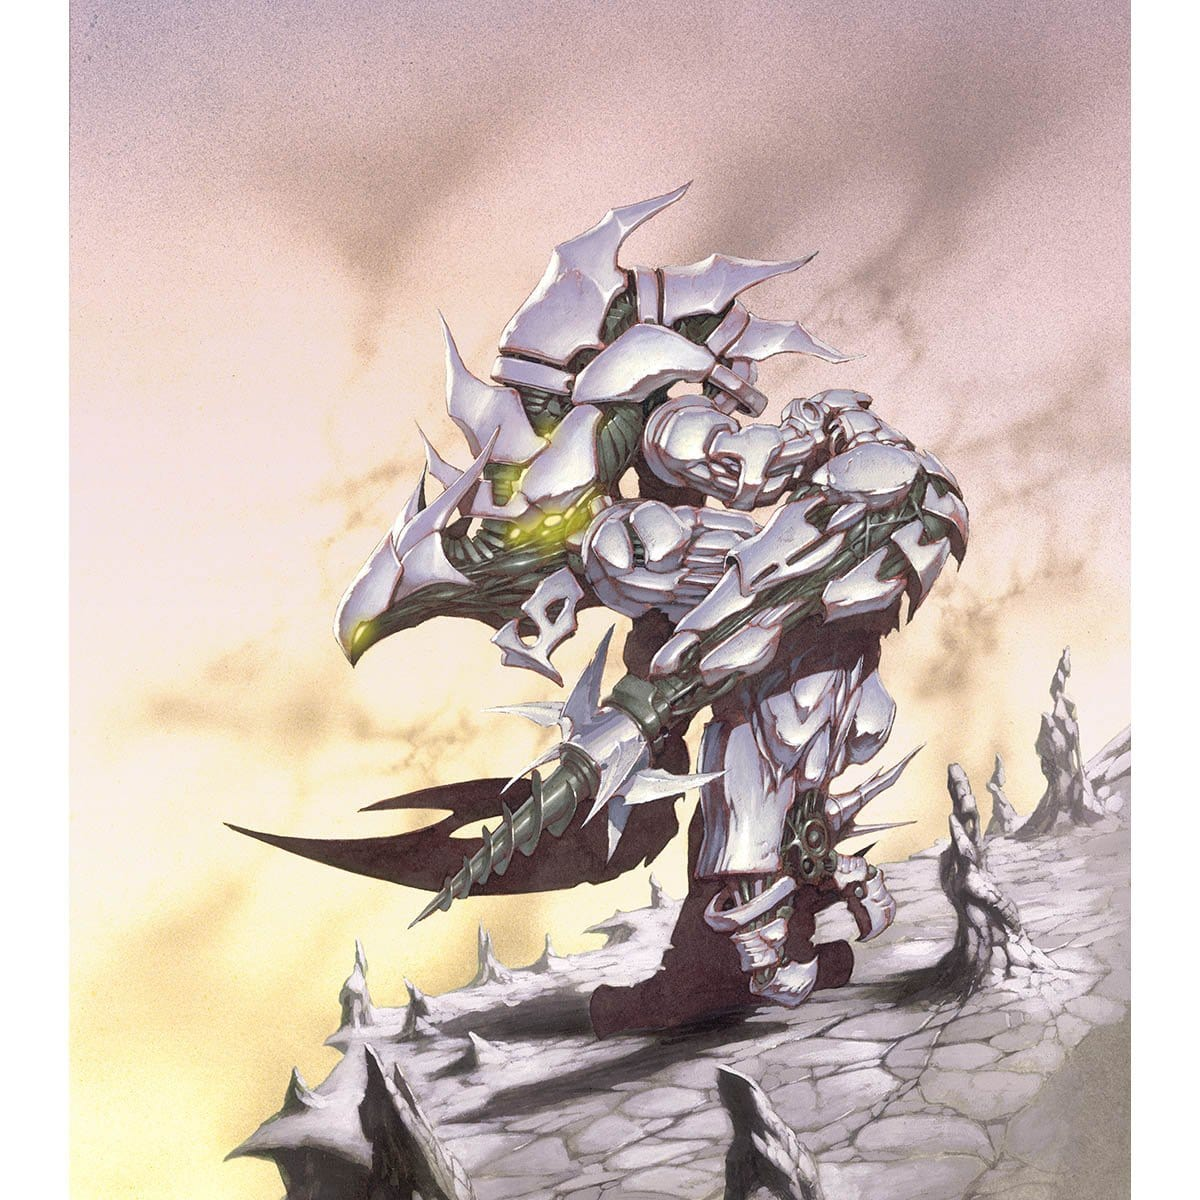 Sundering Titan Print - Print - Original Magic Art - Accessories for Magic the Gathering and other card games